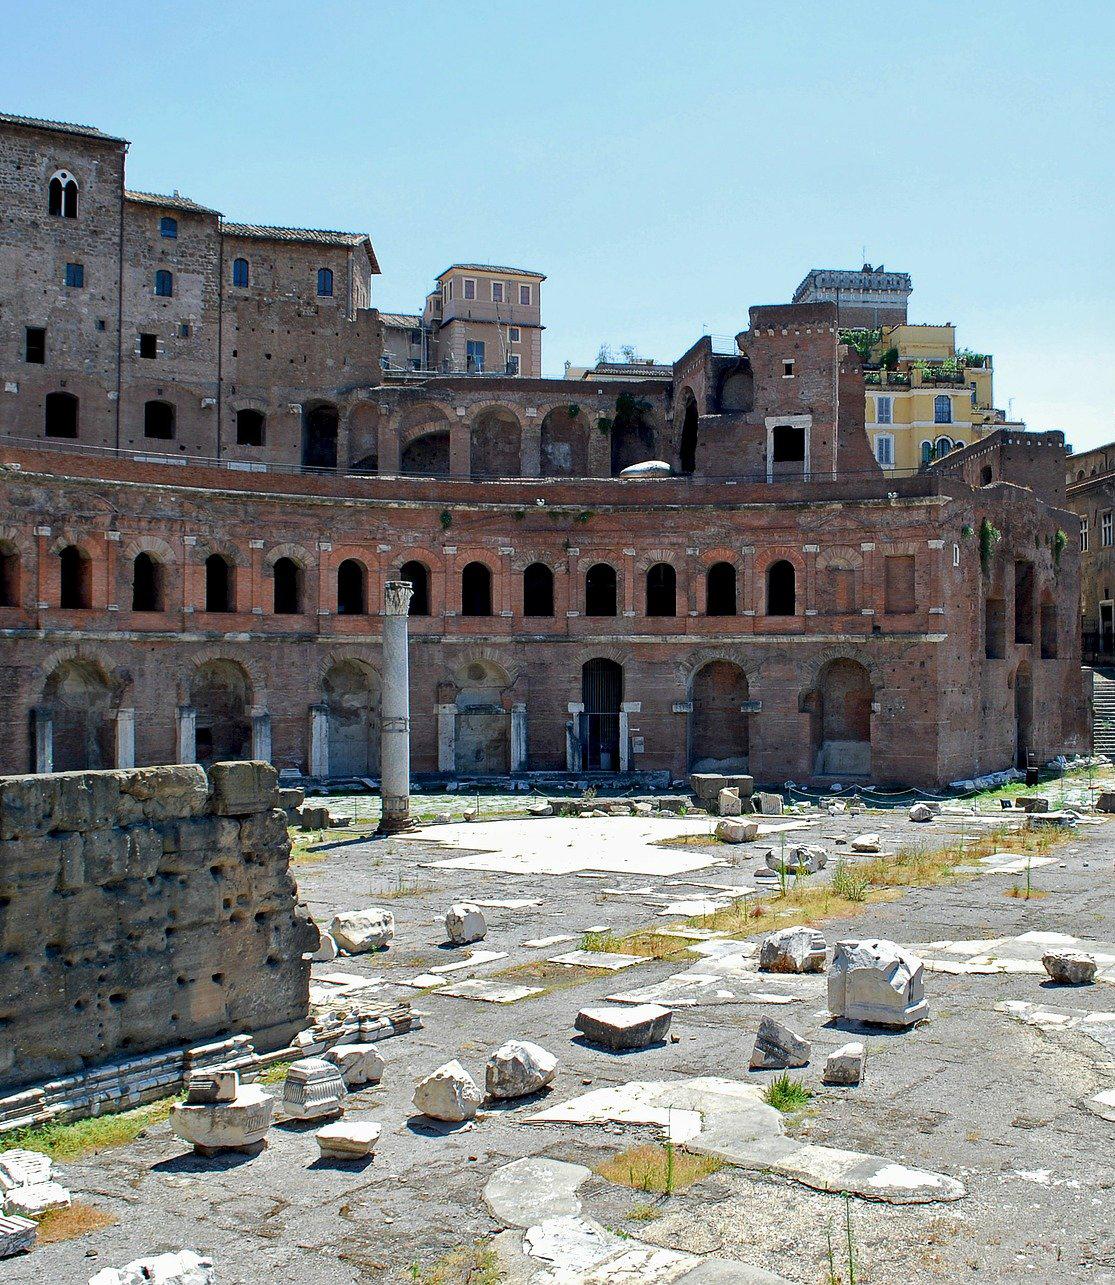 The Trajan's Market in Rome was commissioned by Emperor Trajan in 107 AD and is a semicircular complex arranged over multiple levels, with a series of commercial and administrative buildings where public activities took place